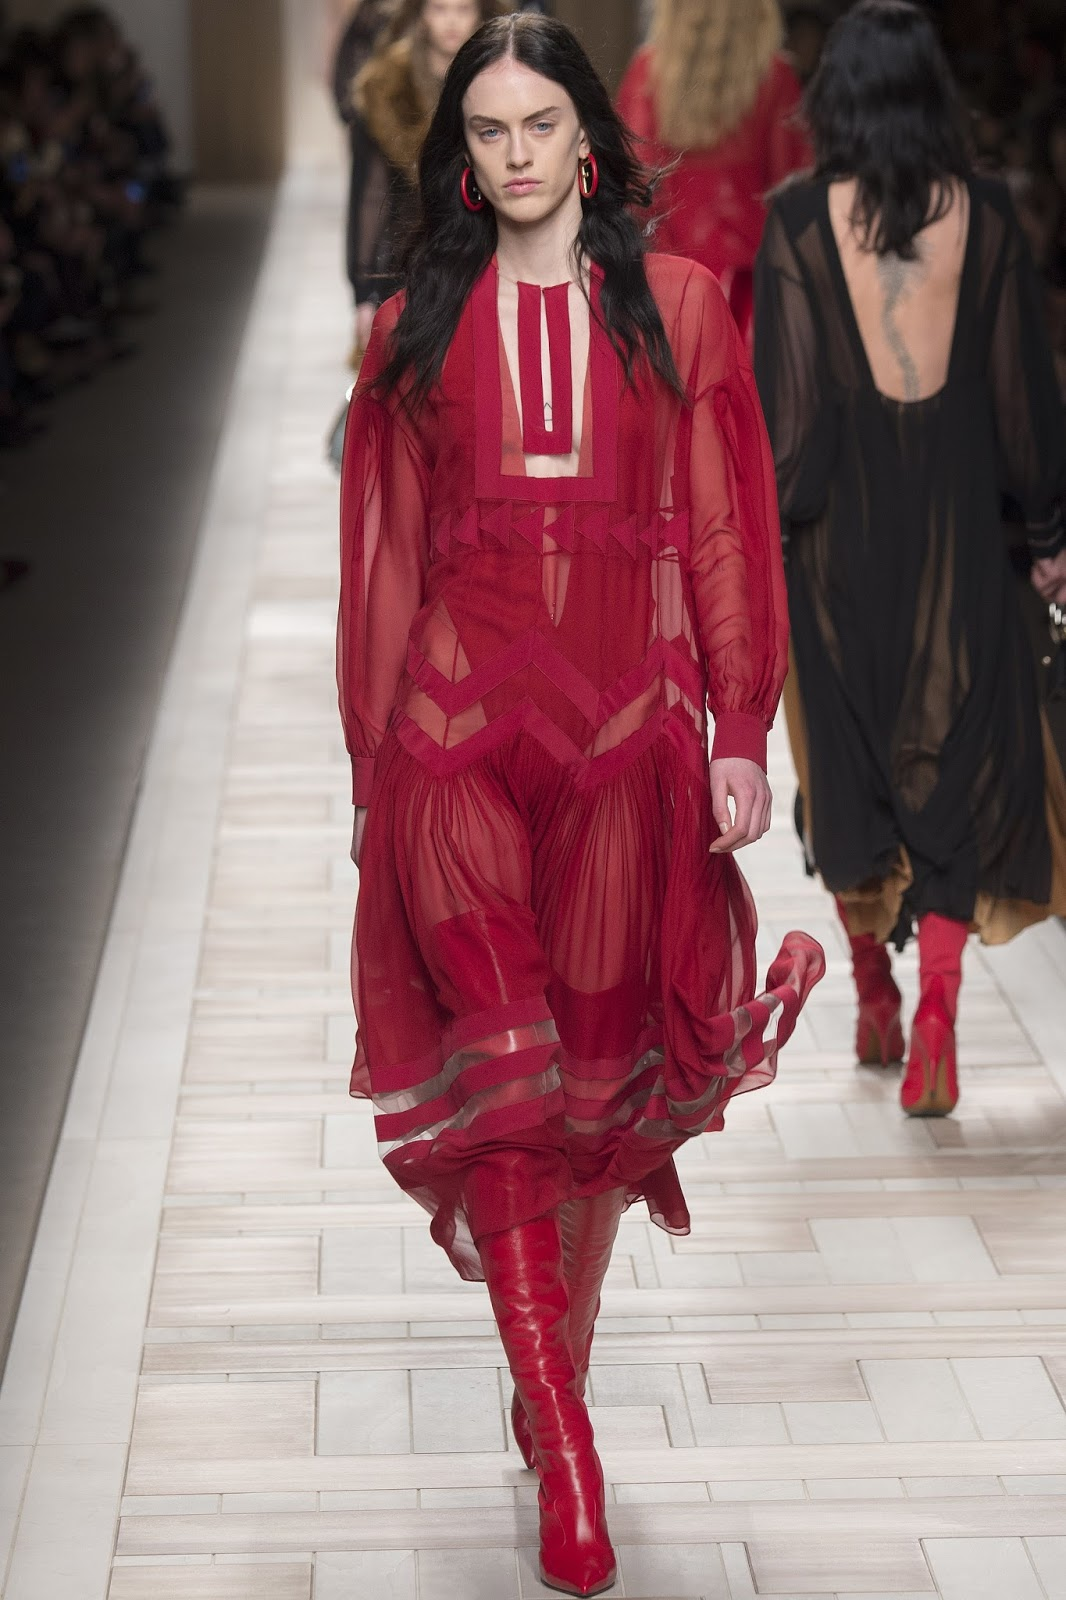 MFW, Autumn/Winter 2017, Fall, red sheer dress